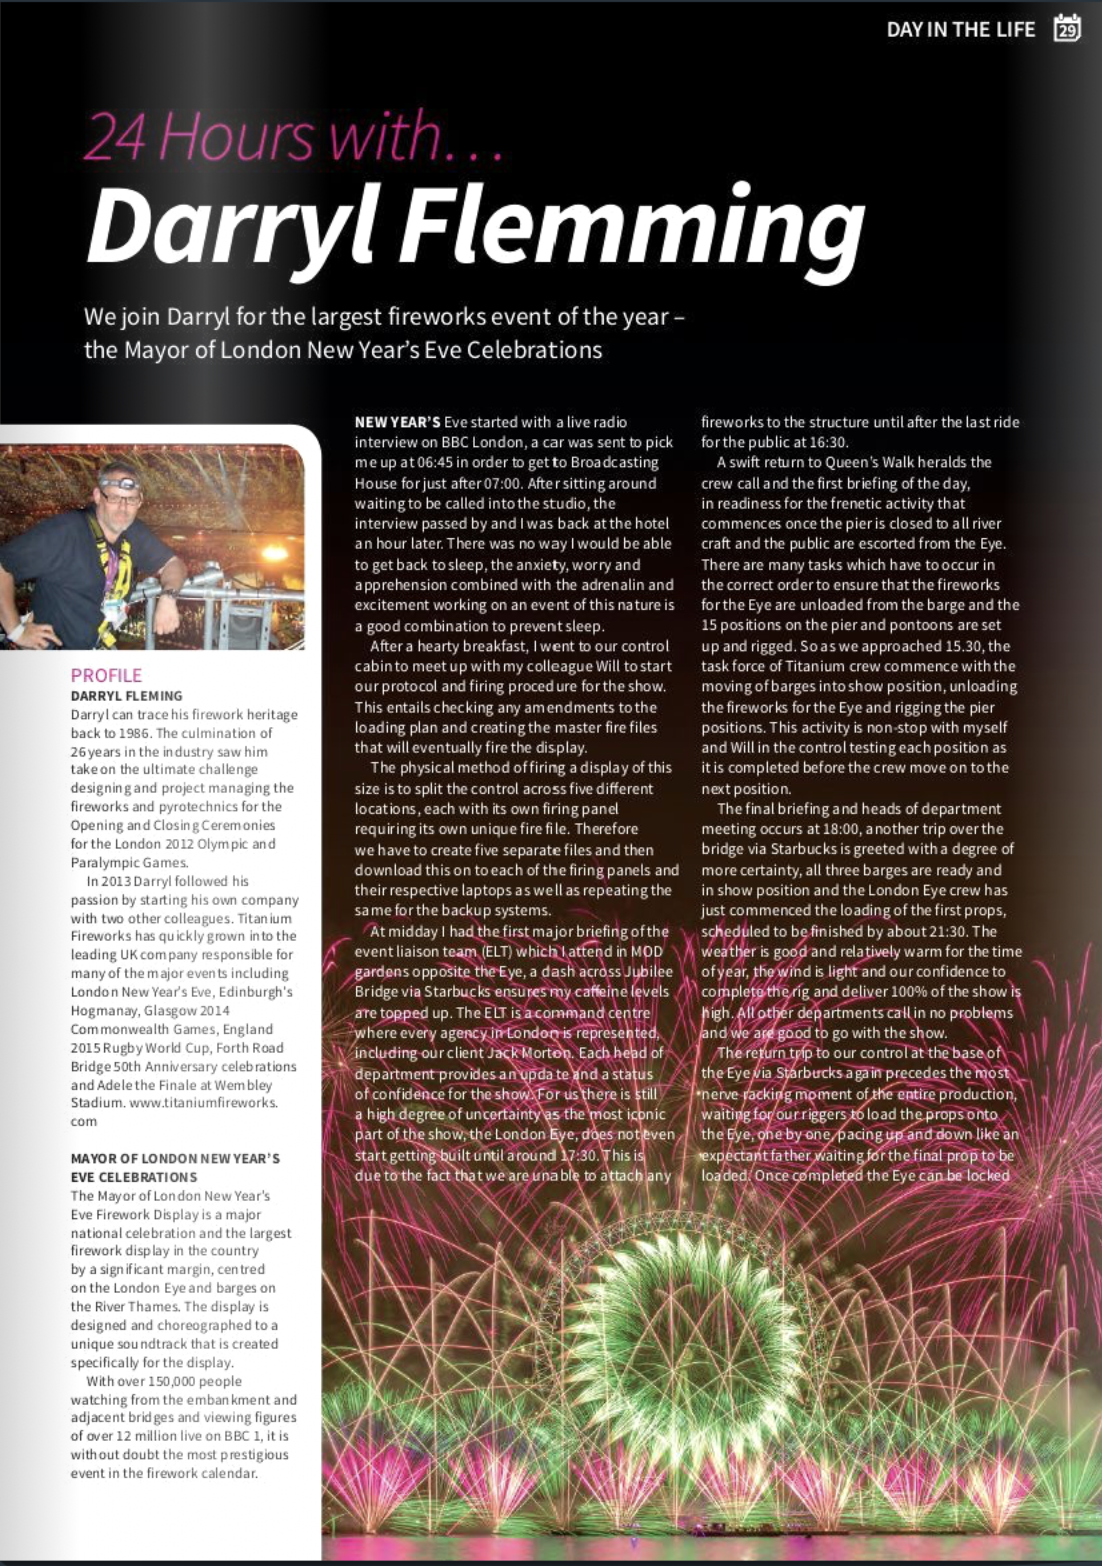 A day in the life of Darryl Fleming - Titanium Fireworks